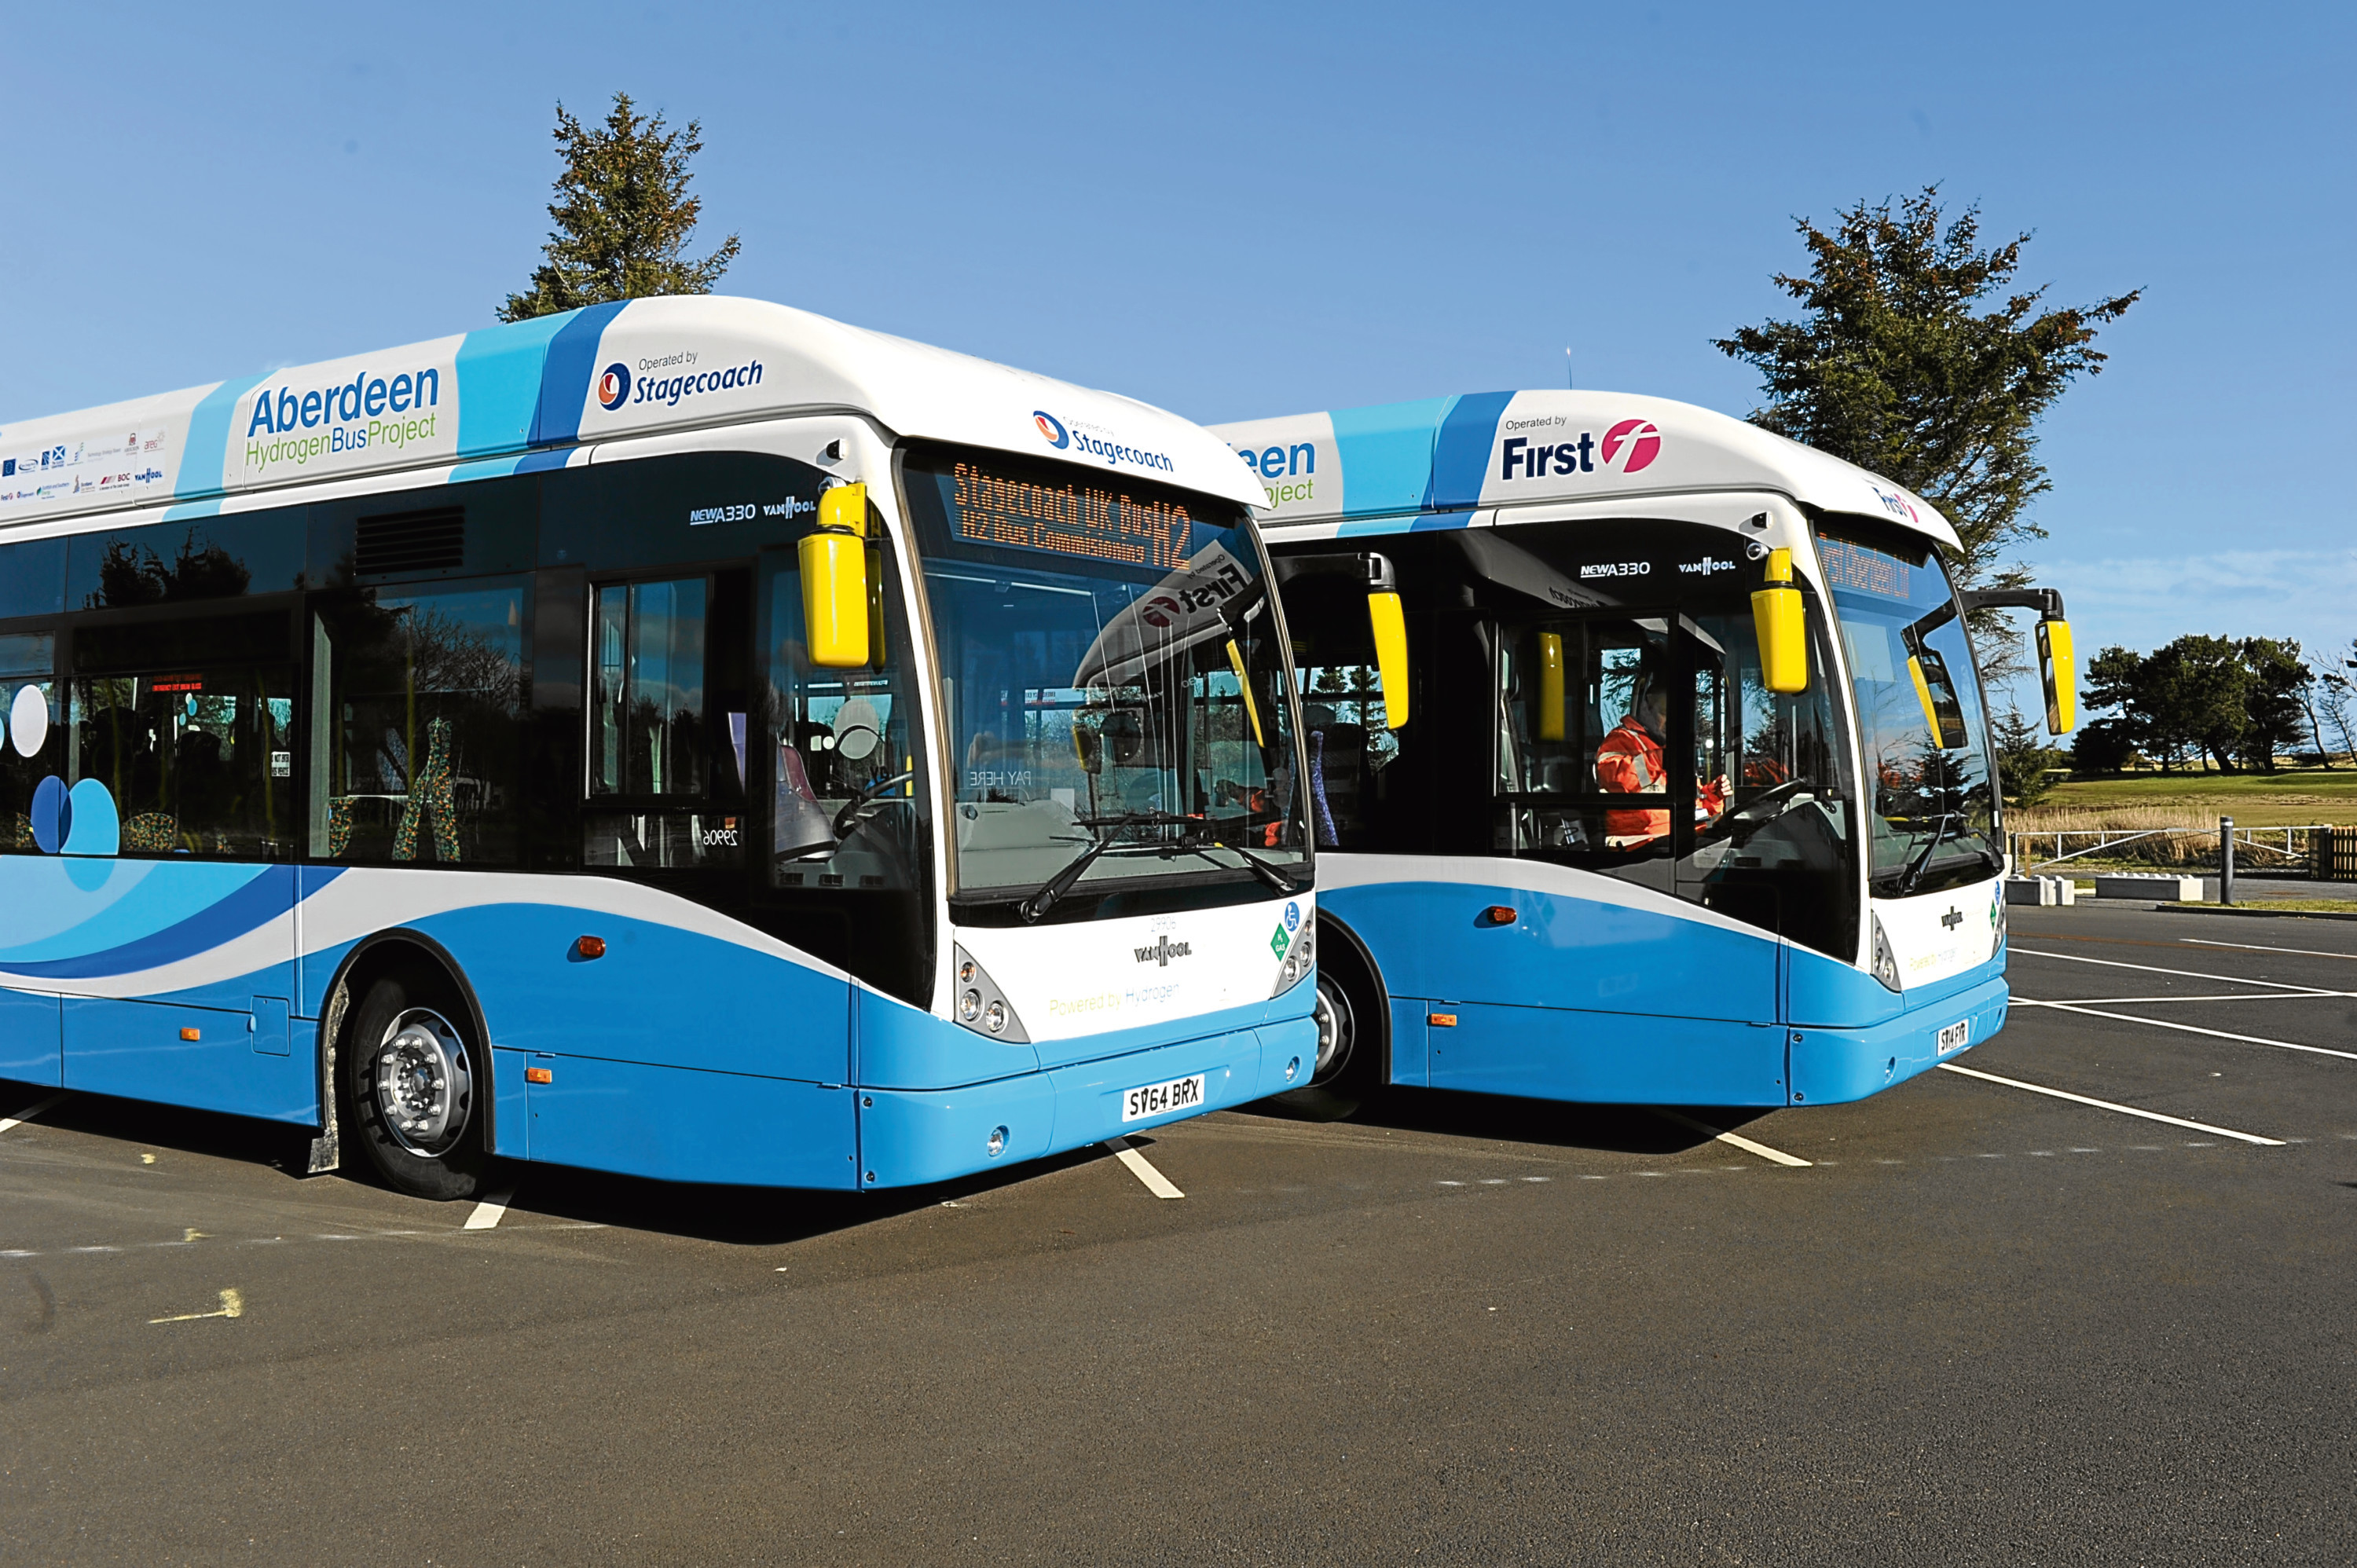 The buses will join the city's existing hydrogen bus fleet at no additional cost to the council